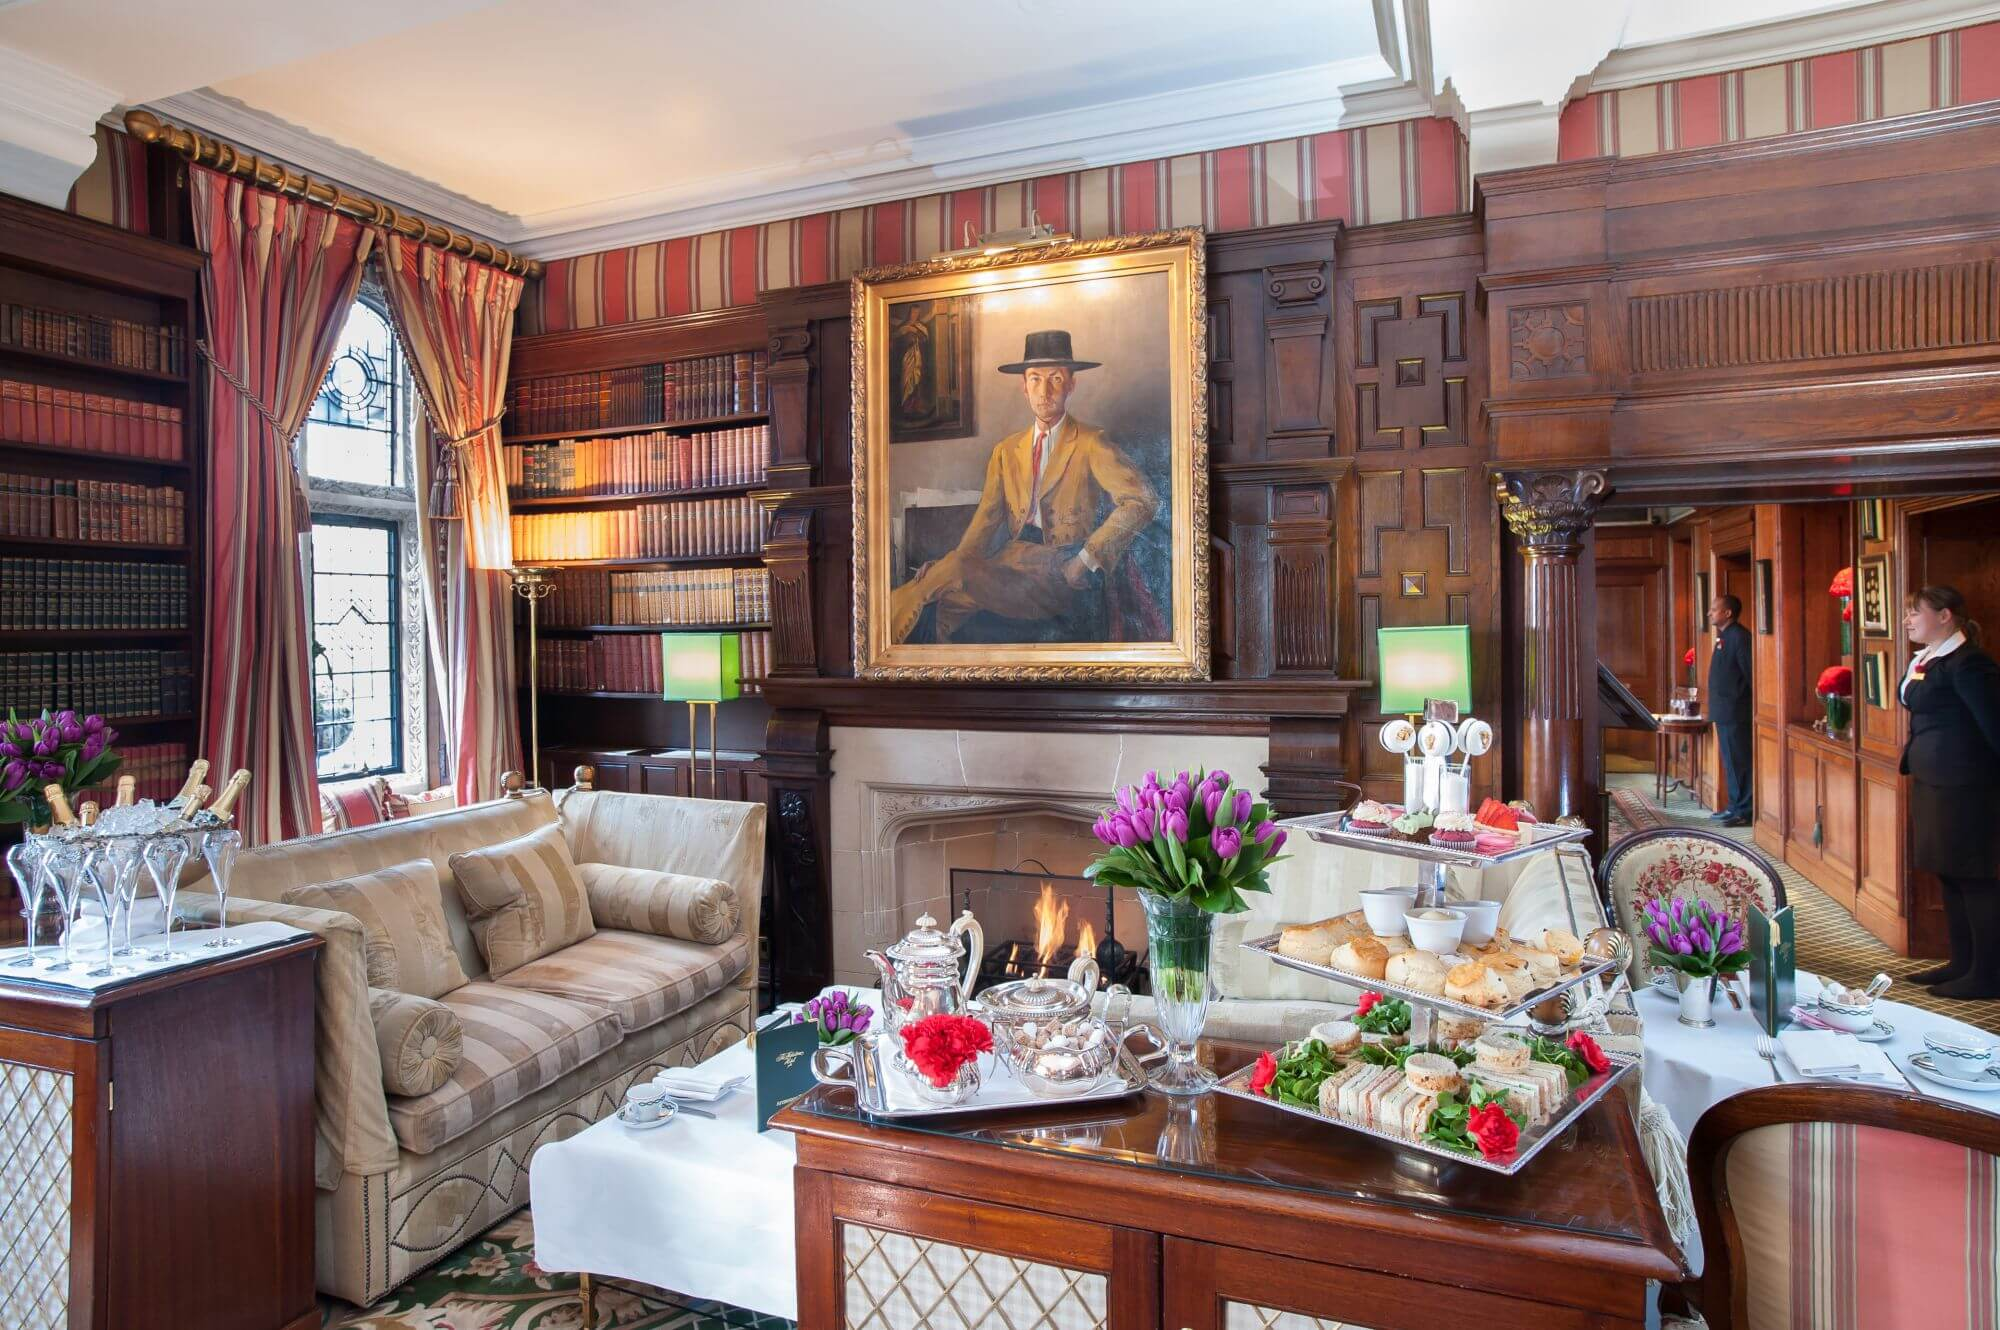 #10 Park Lounge At The Millestone Hotel | London Tea Rooms | Image Source: tripreporter.co.uk